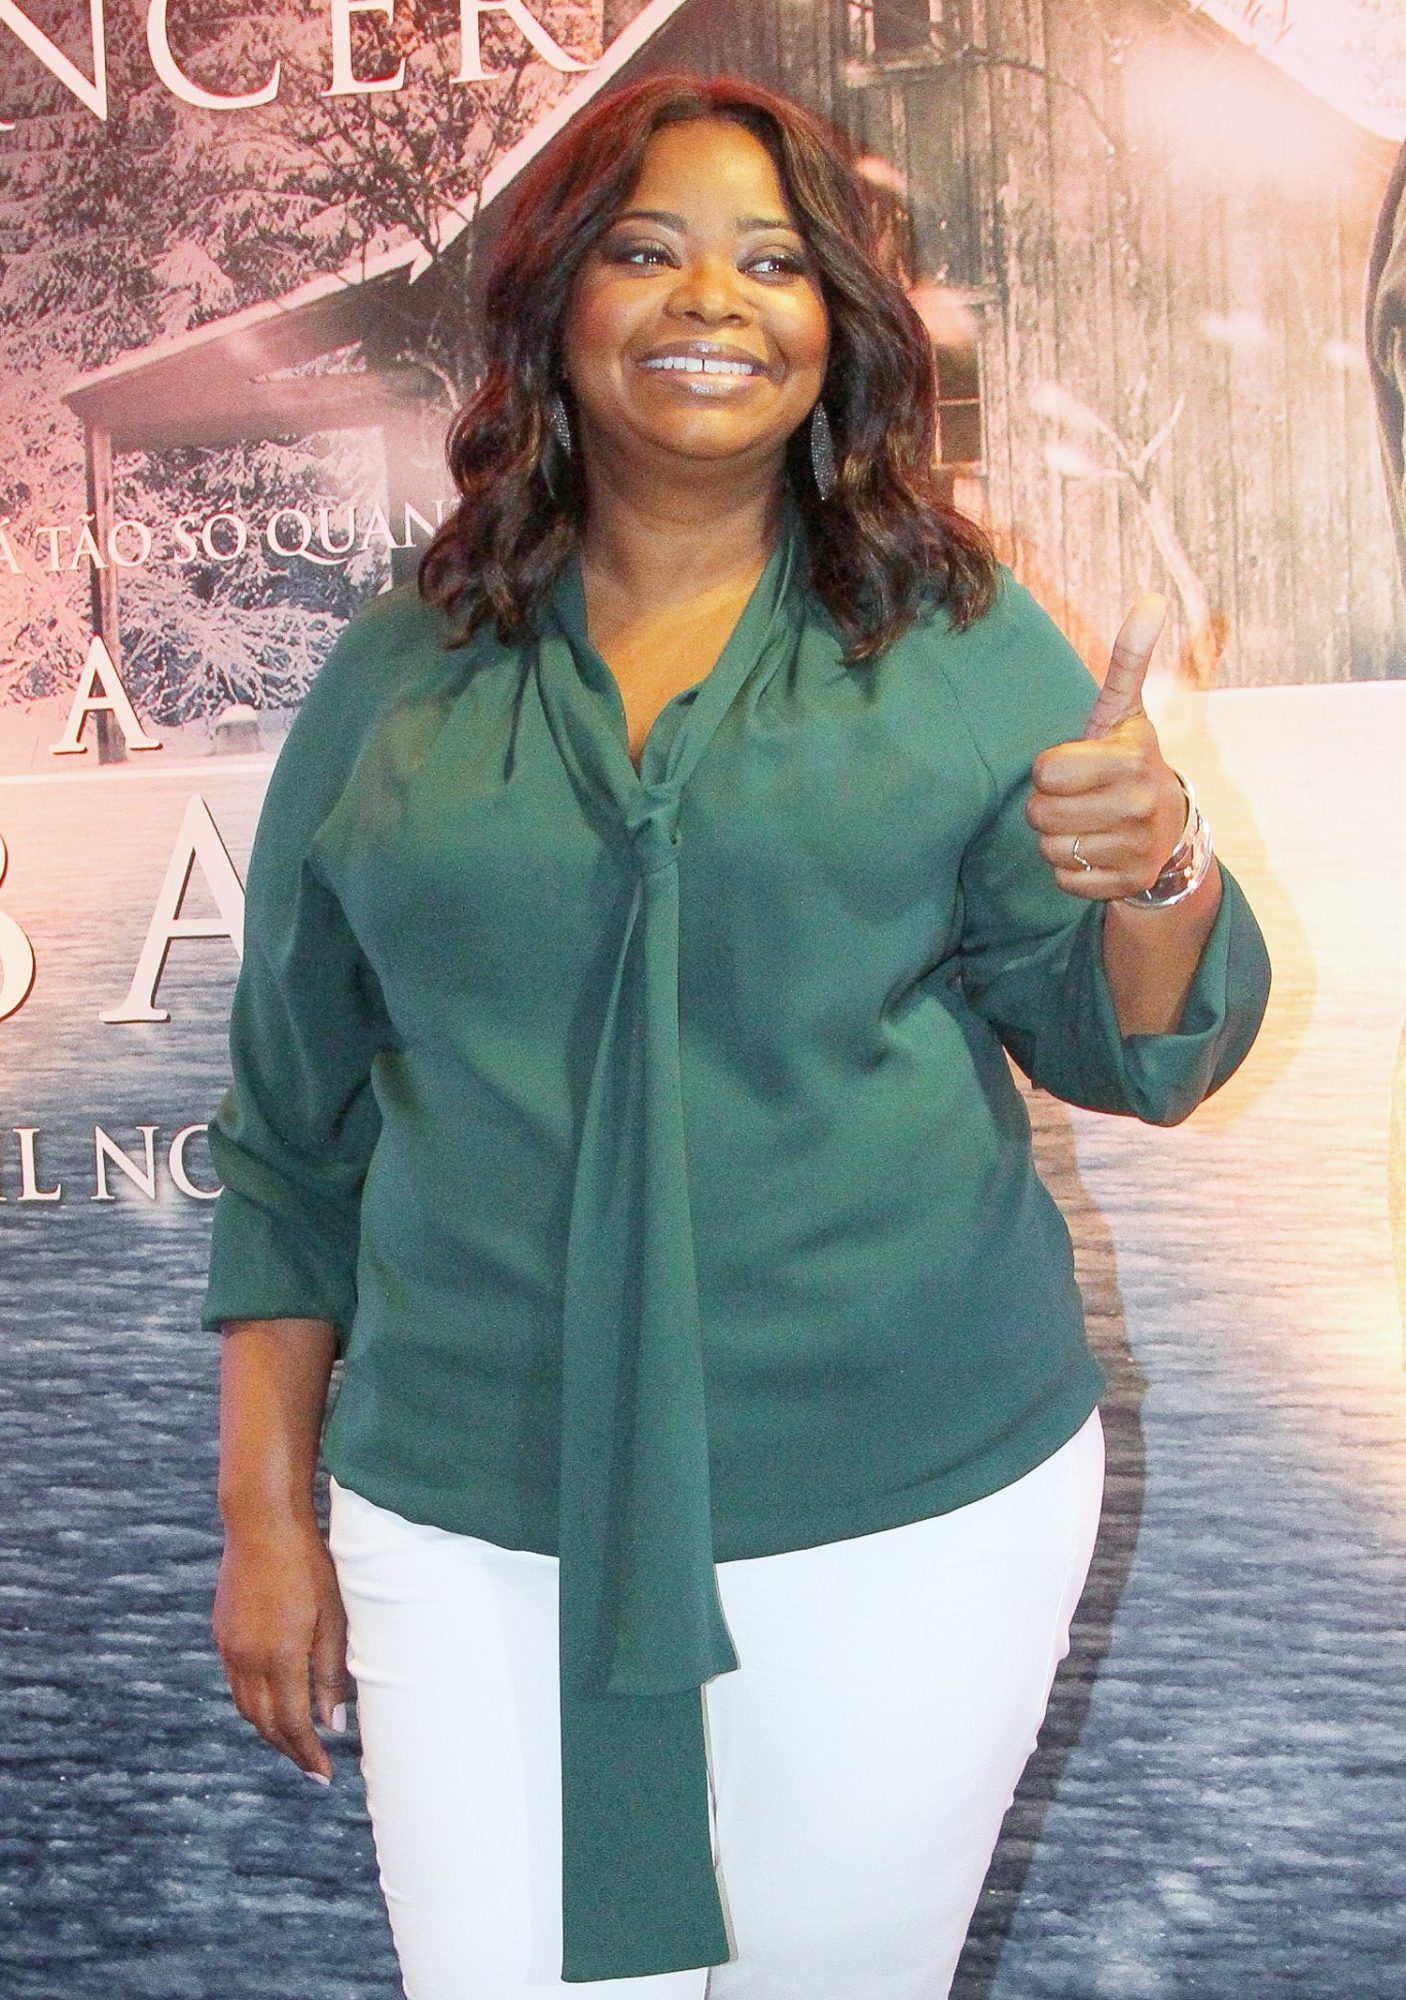 Octavia Spencer is all smiles during 'The Shack' photocall in Rio